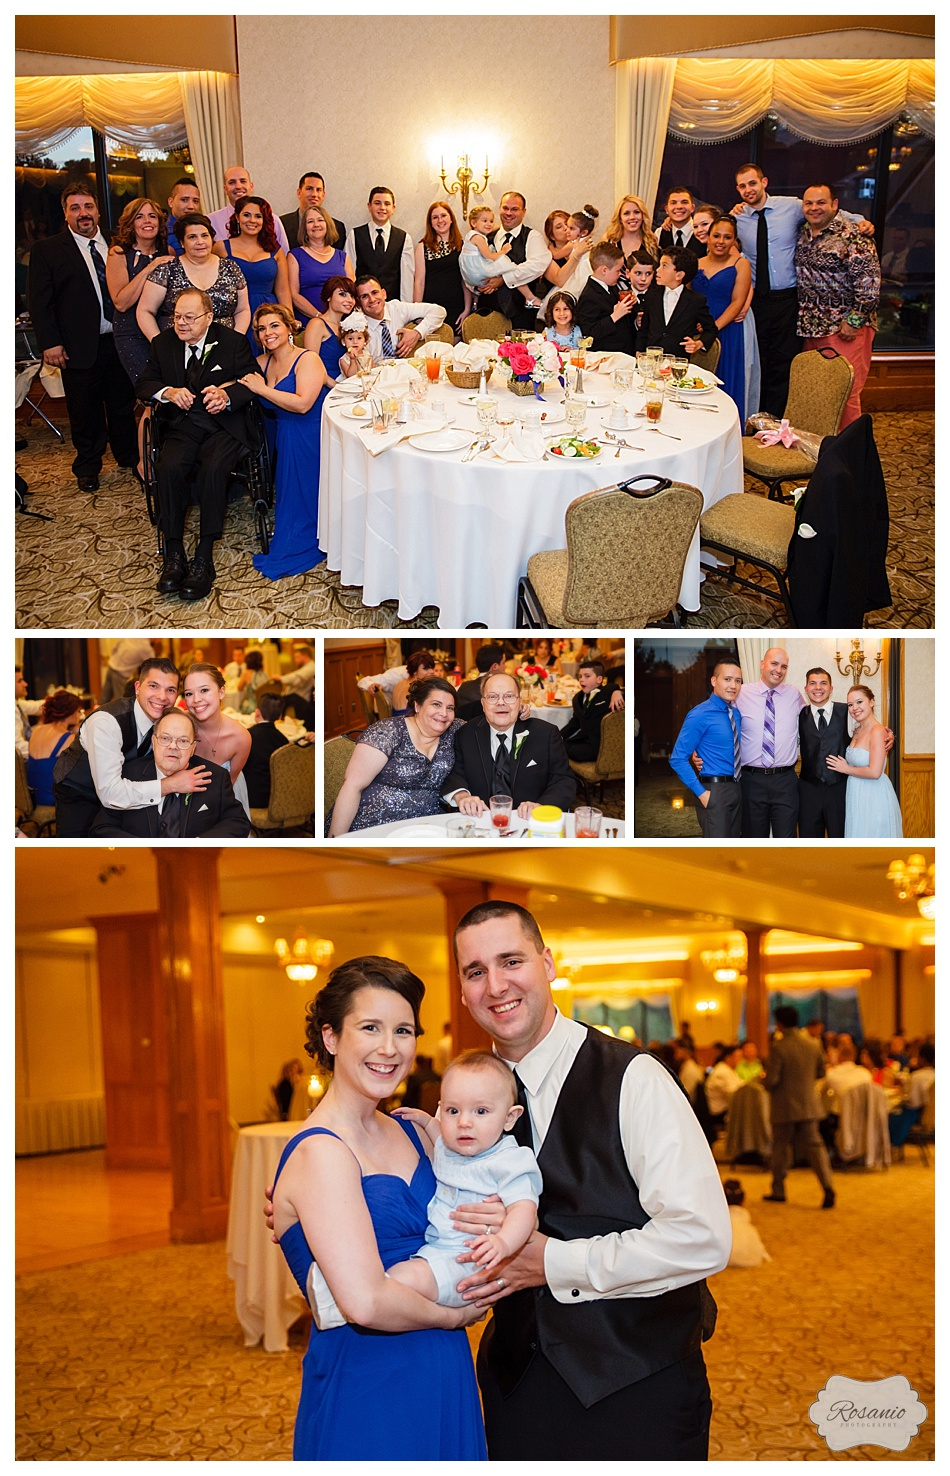 Rosanio Photography | Andover Country Club Wedding_0113.jpg